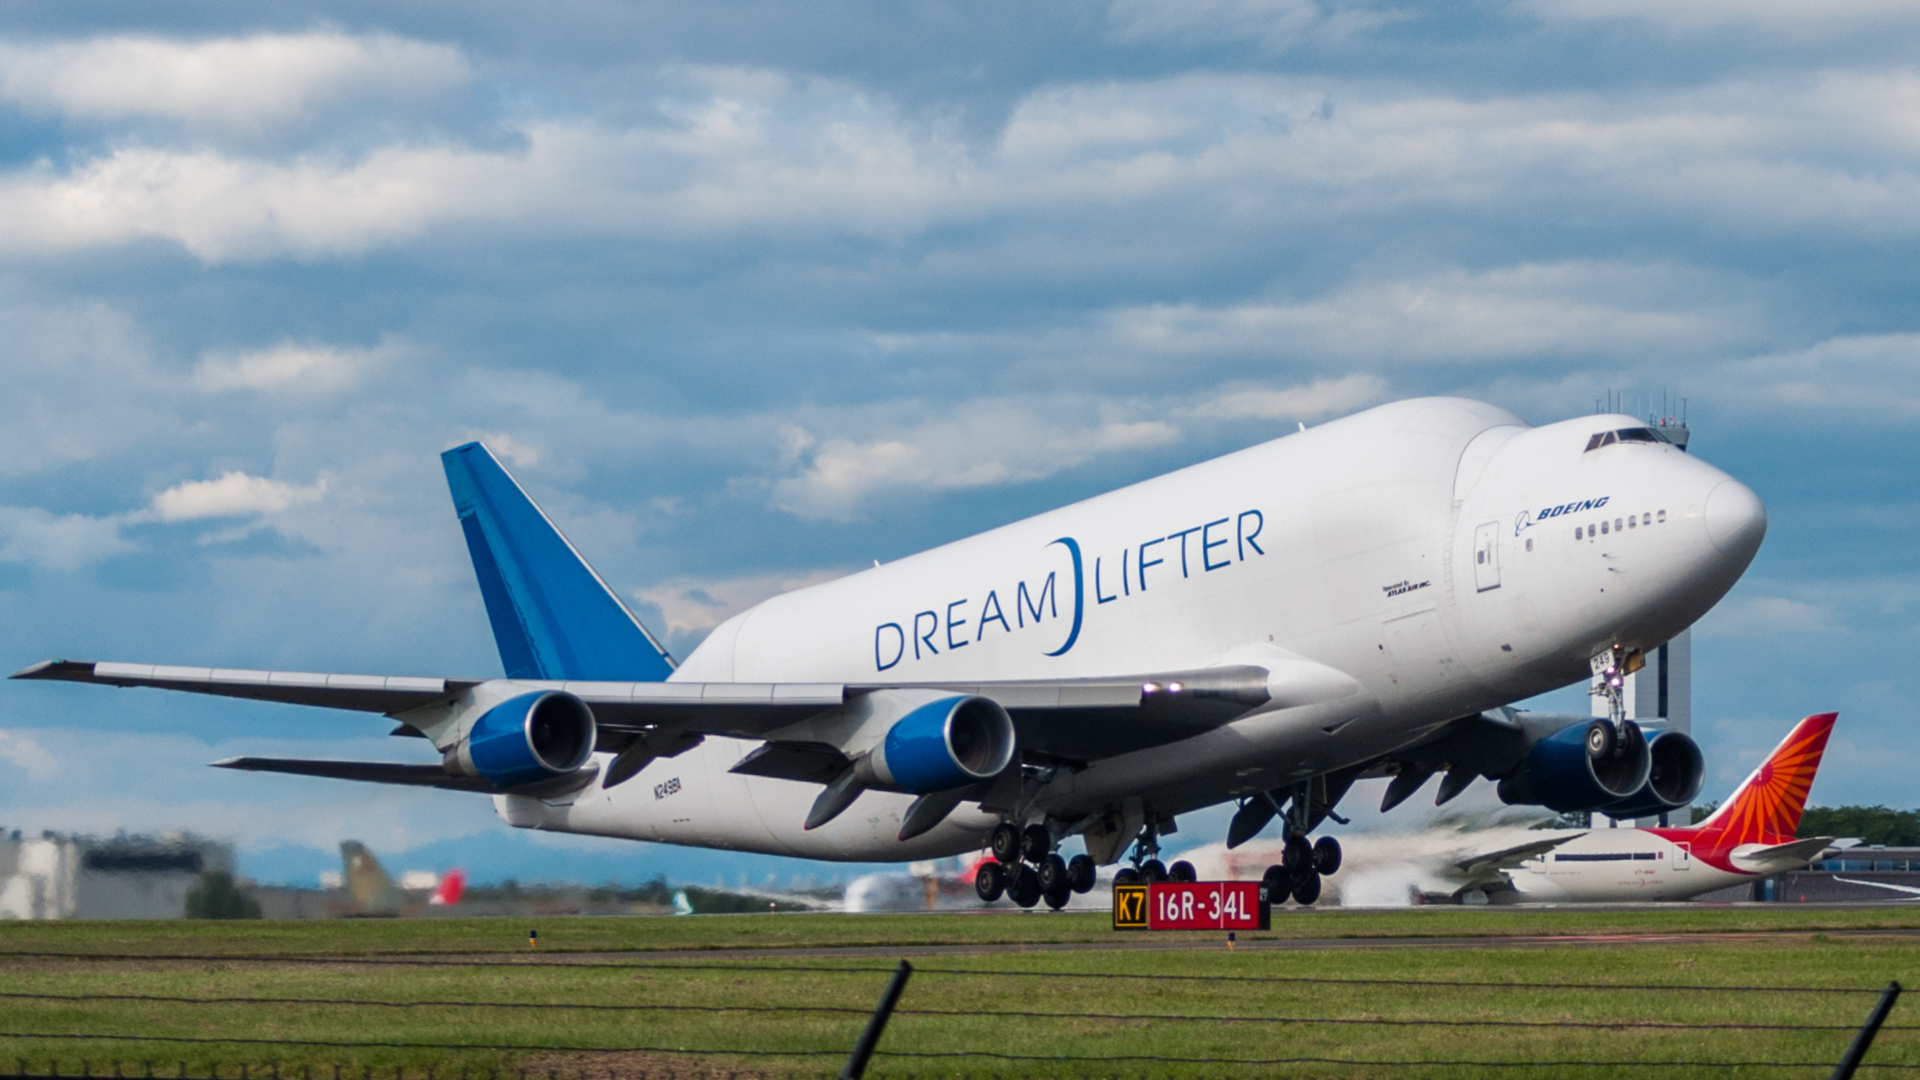 A380 Wallpaper Hd Boeing Dreamlifter Full Hd Wallpaper And Background Image